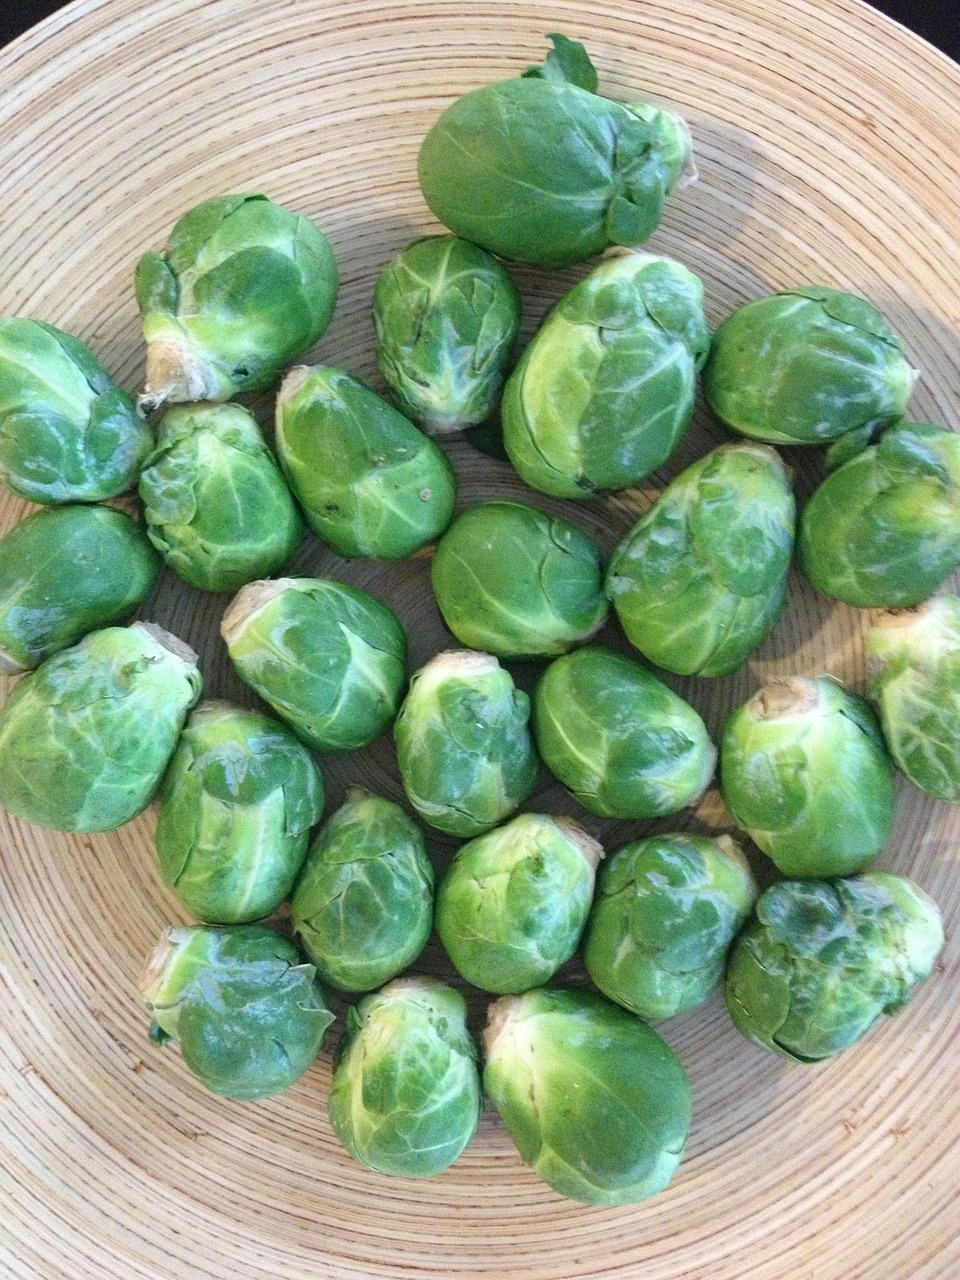 brussel sprouts vegetables brussels sprouts free photo